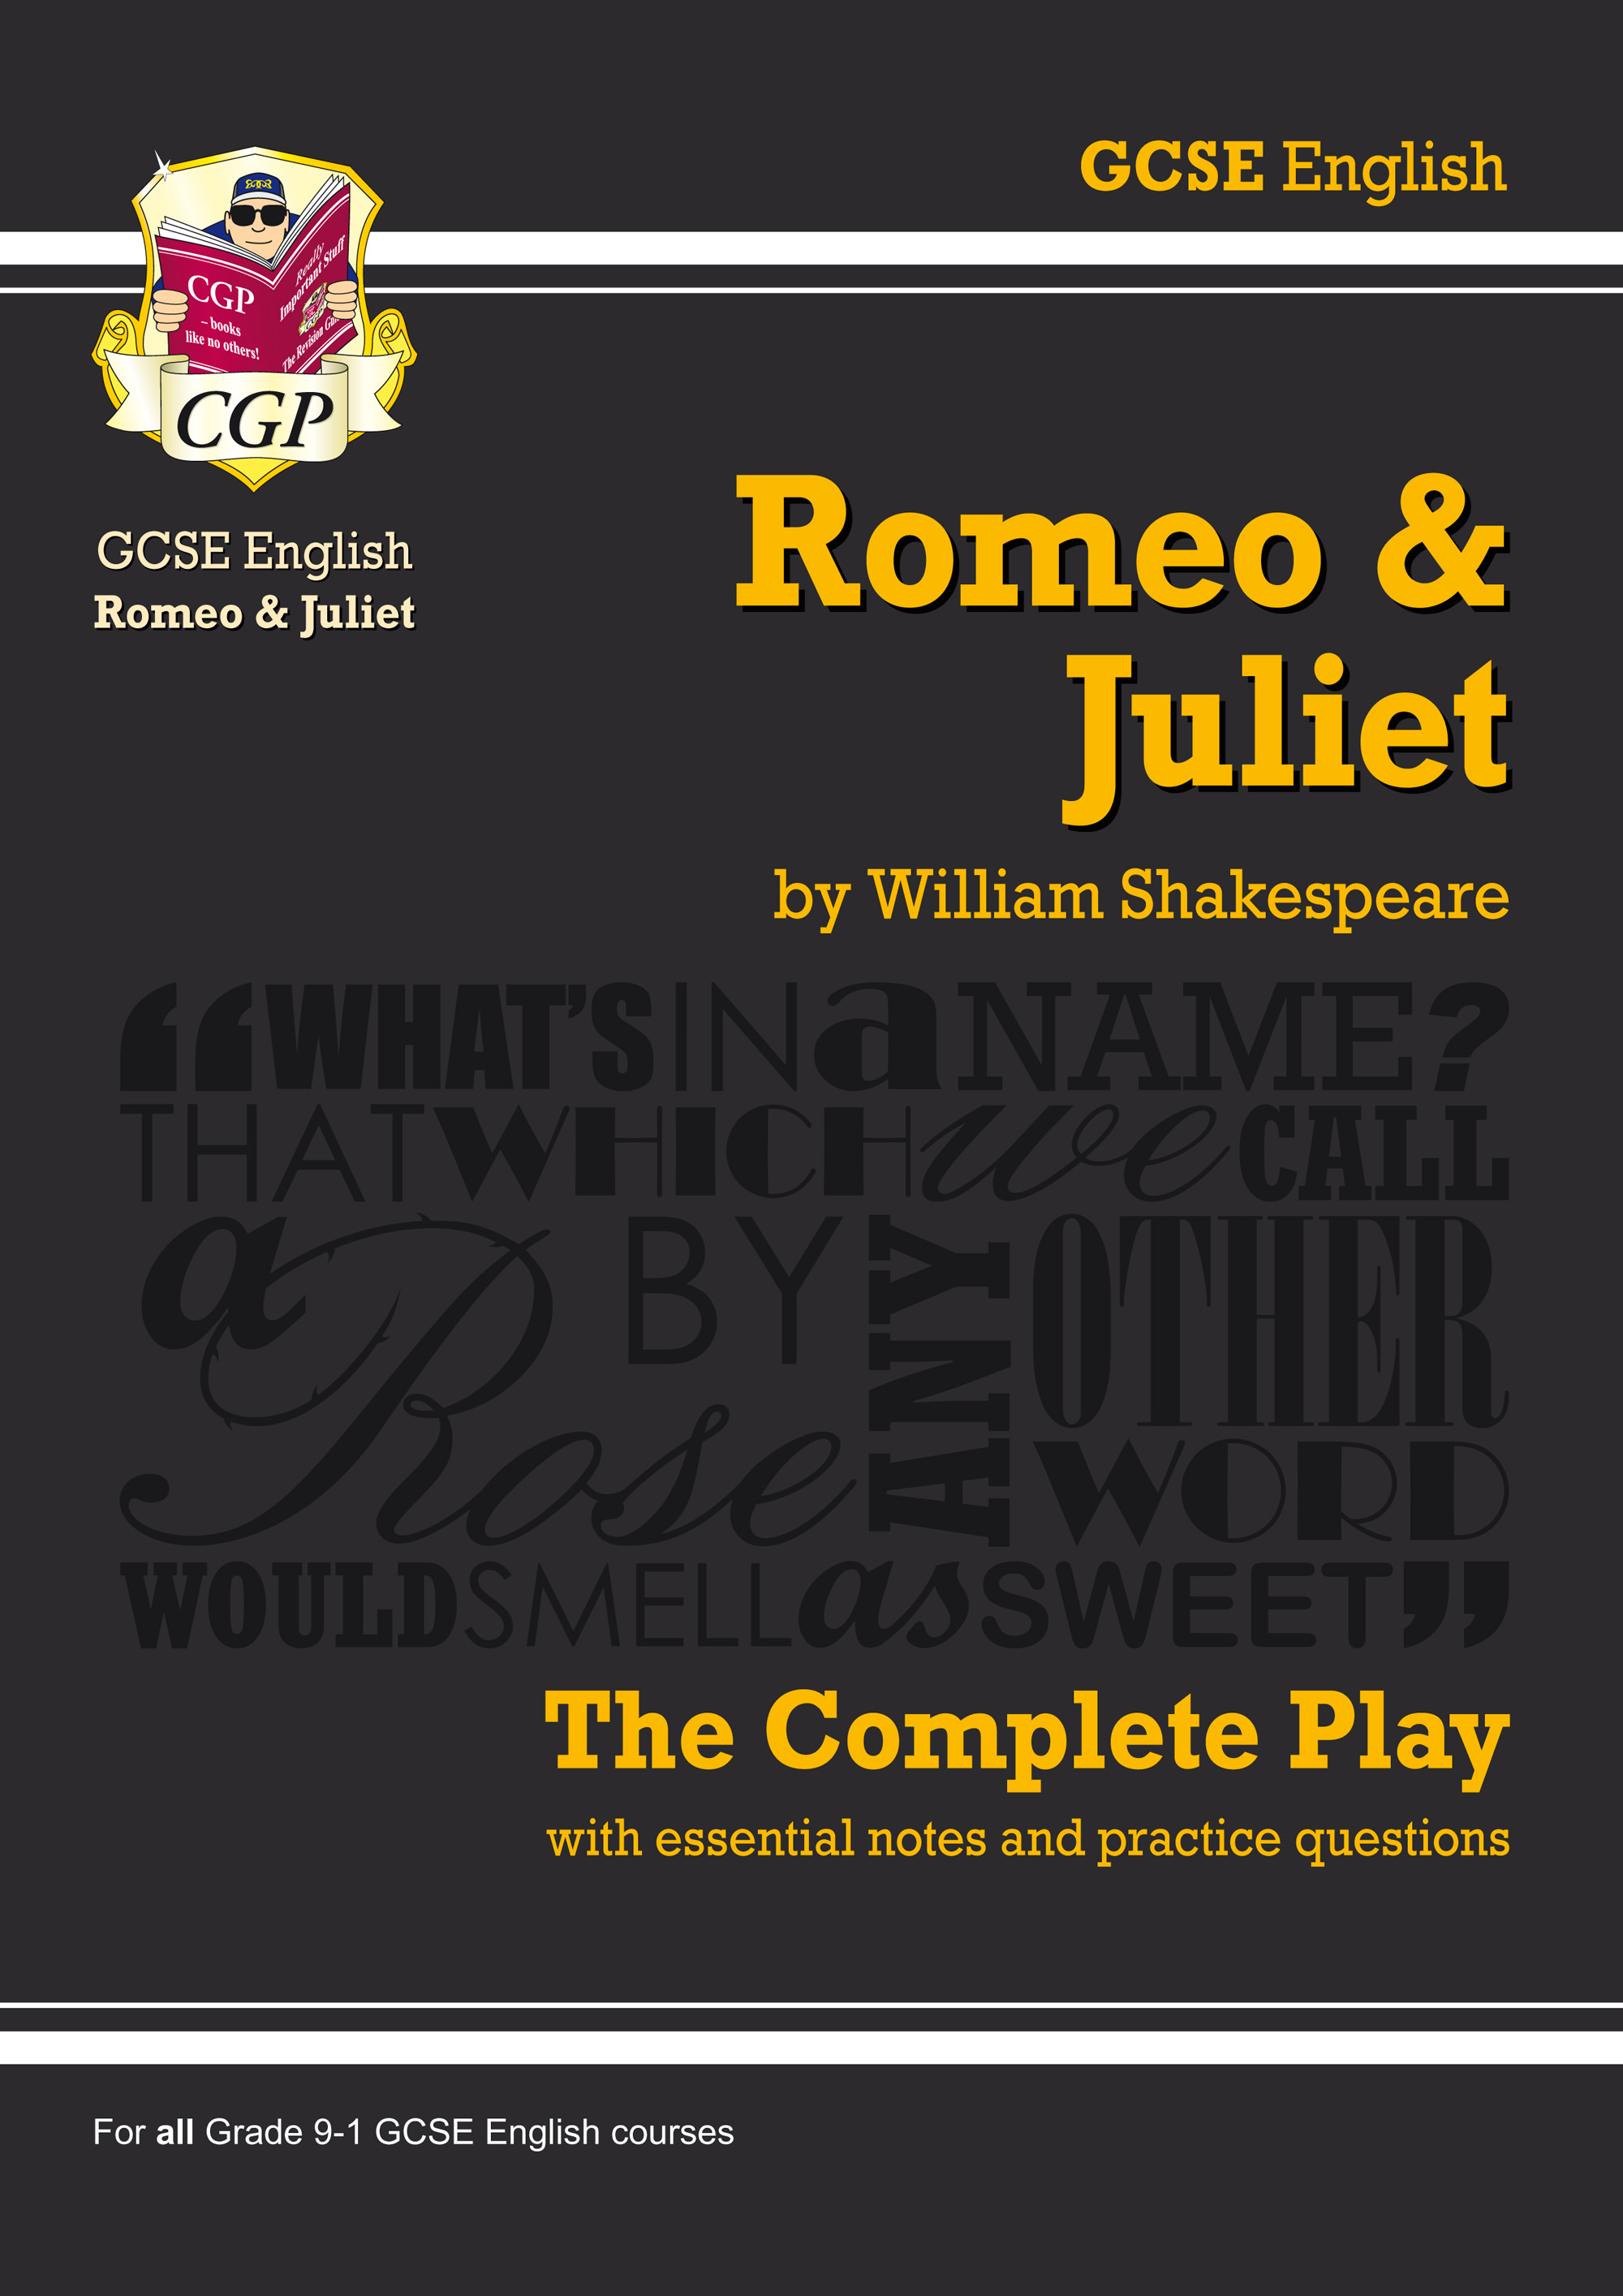 EPR44 - Grade 9-1 GCSE English Romeo and Juliet - The Complete Play